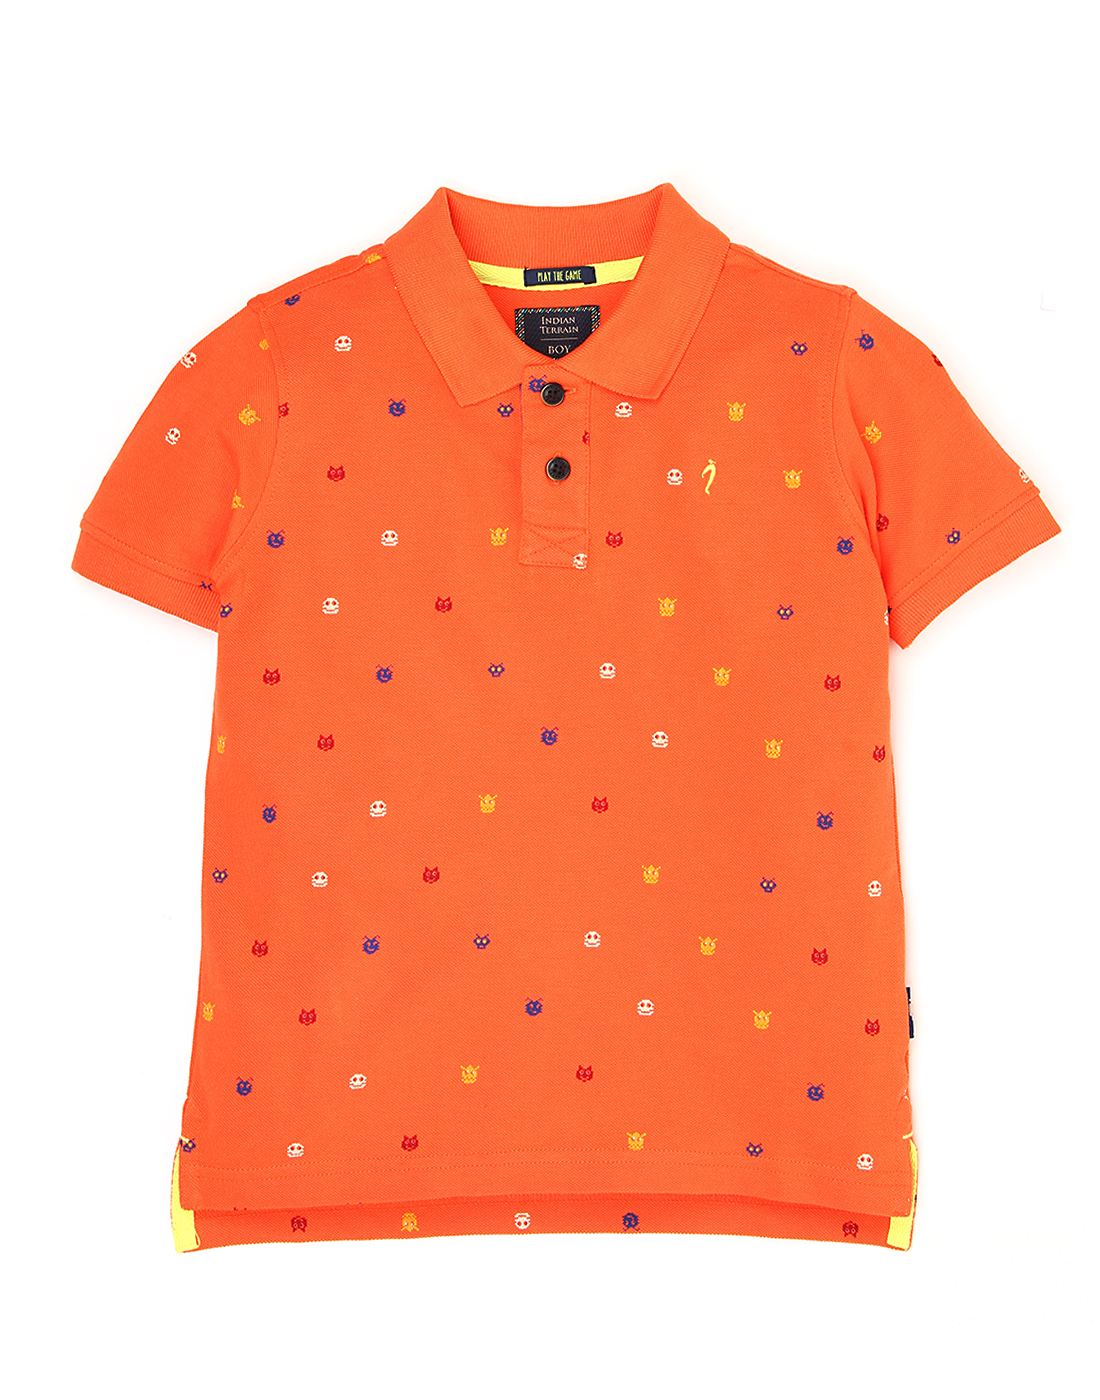 Indian Terrain Boys Orange Printed T-Shirt